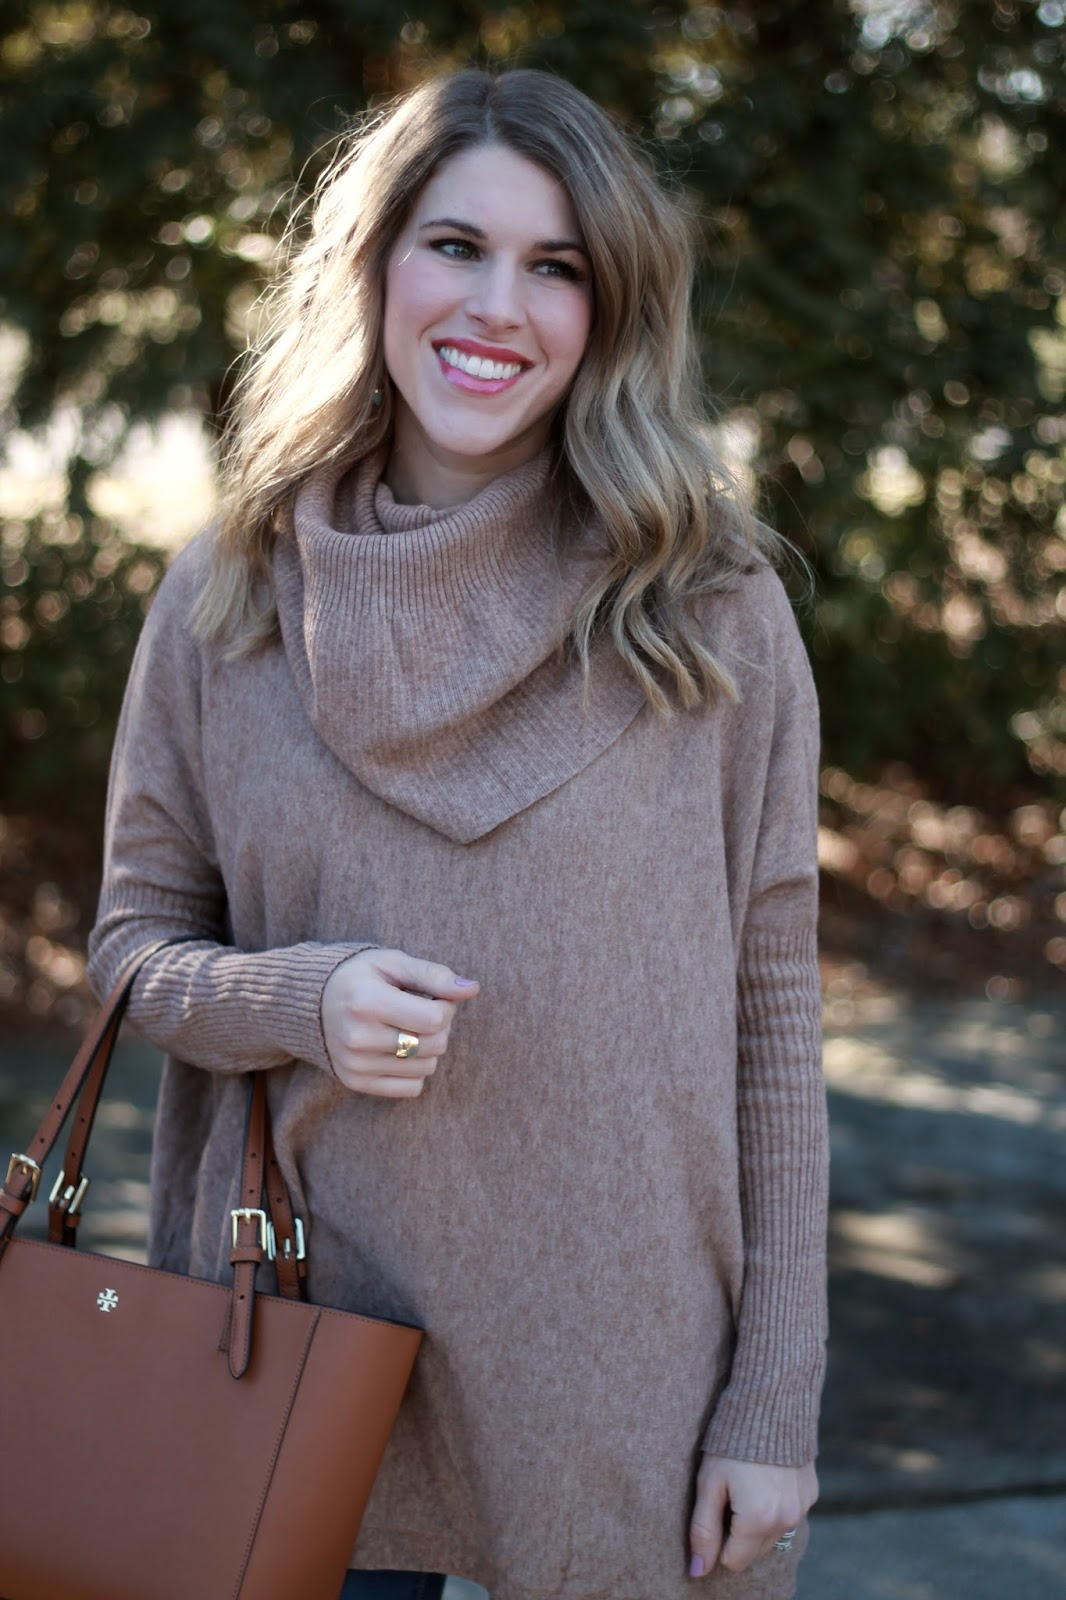 camel oversized turtleneck tunic sweater, Old Navy Rockstar soft jeans, brown suede riding boots, Tory Burch cognac tote